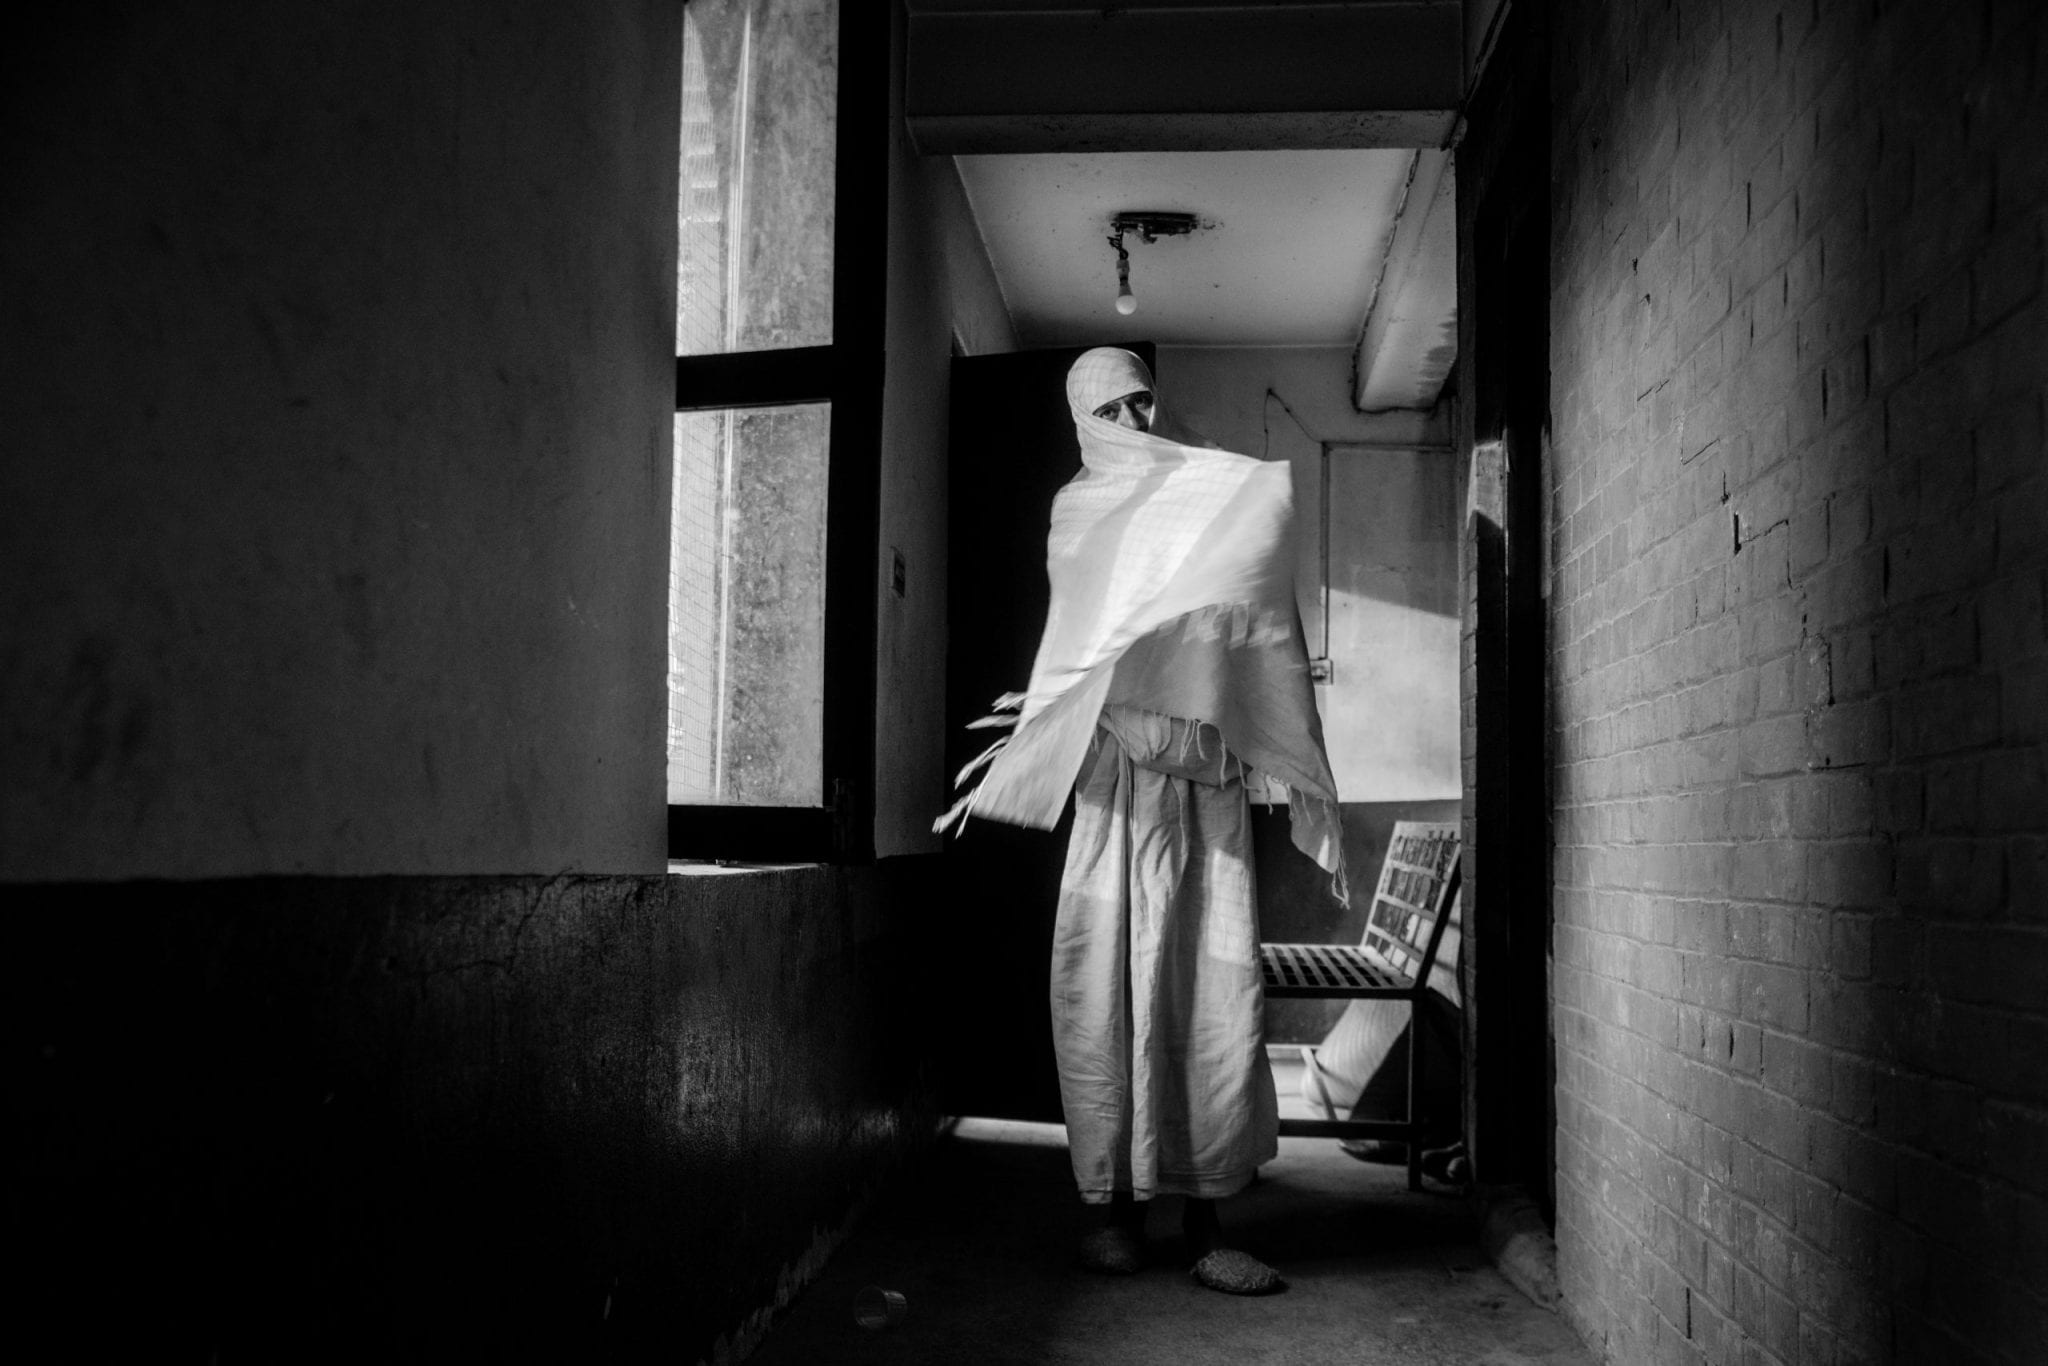 A Surrogate Mourner, © Robic Upadhayay